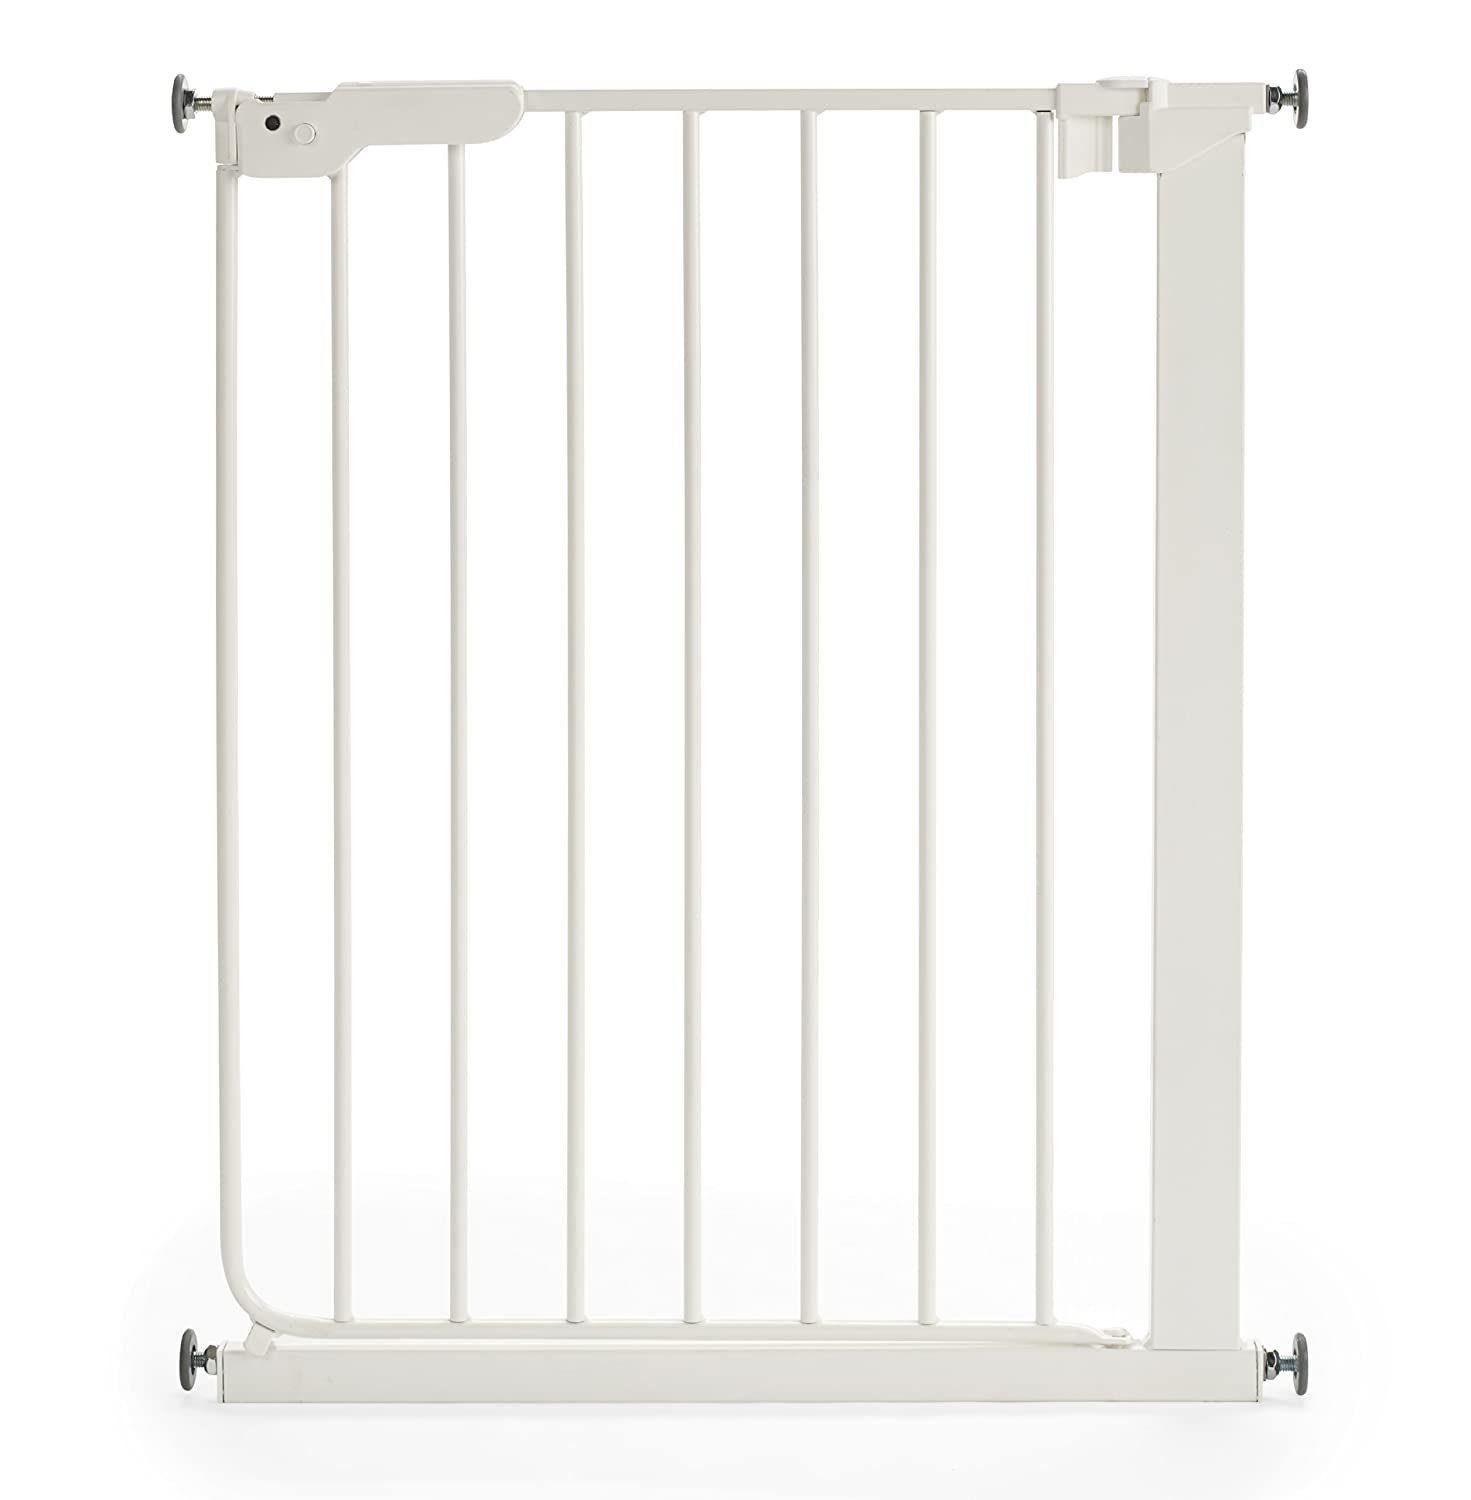 BabyDan Danamic True Pressure Fit Safety Gate (White) 51314-2490-01-75 378185 BABY EQUIPMENT Babycare